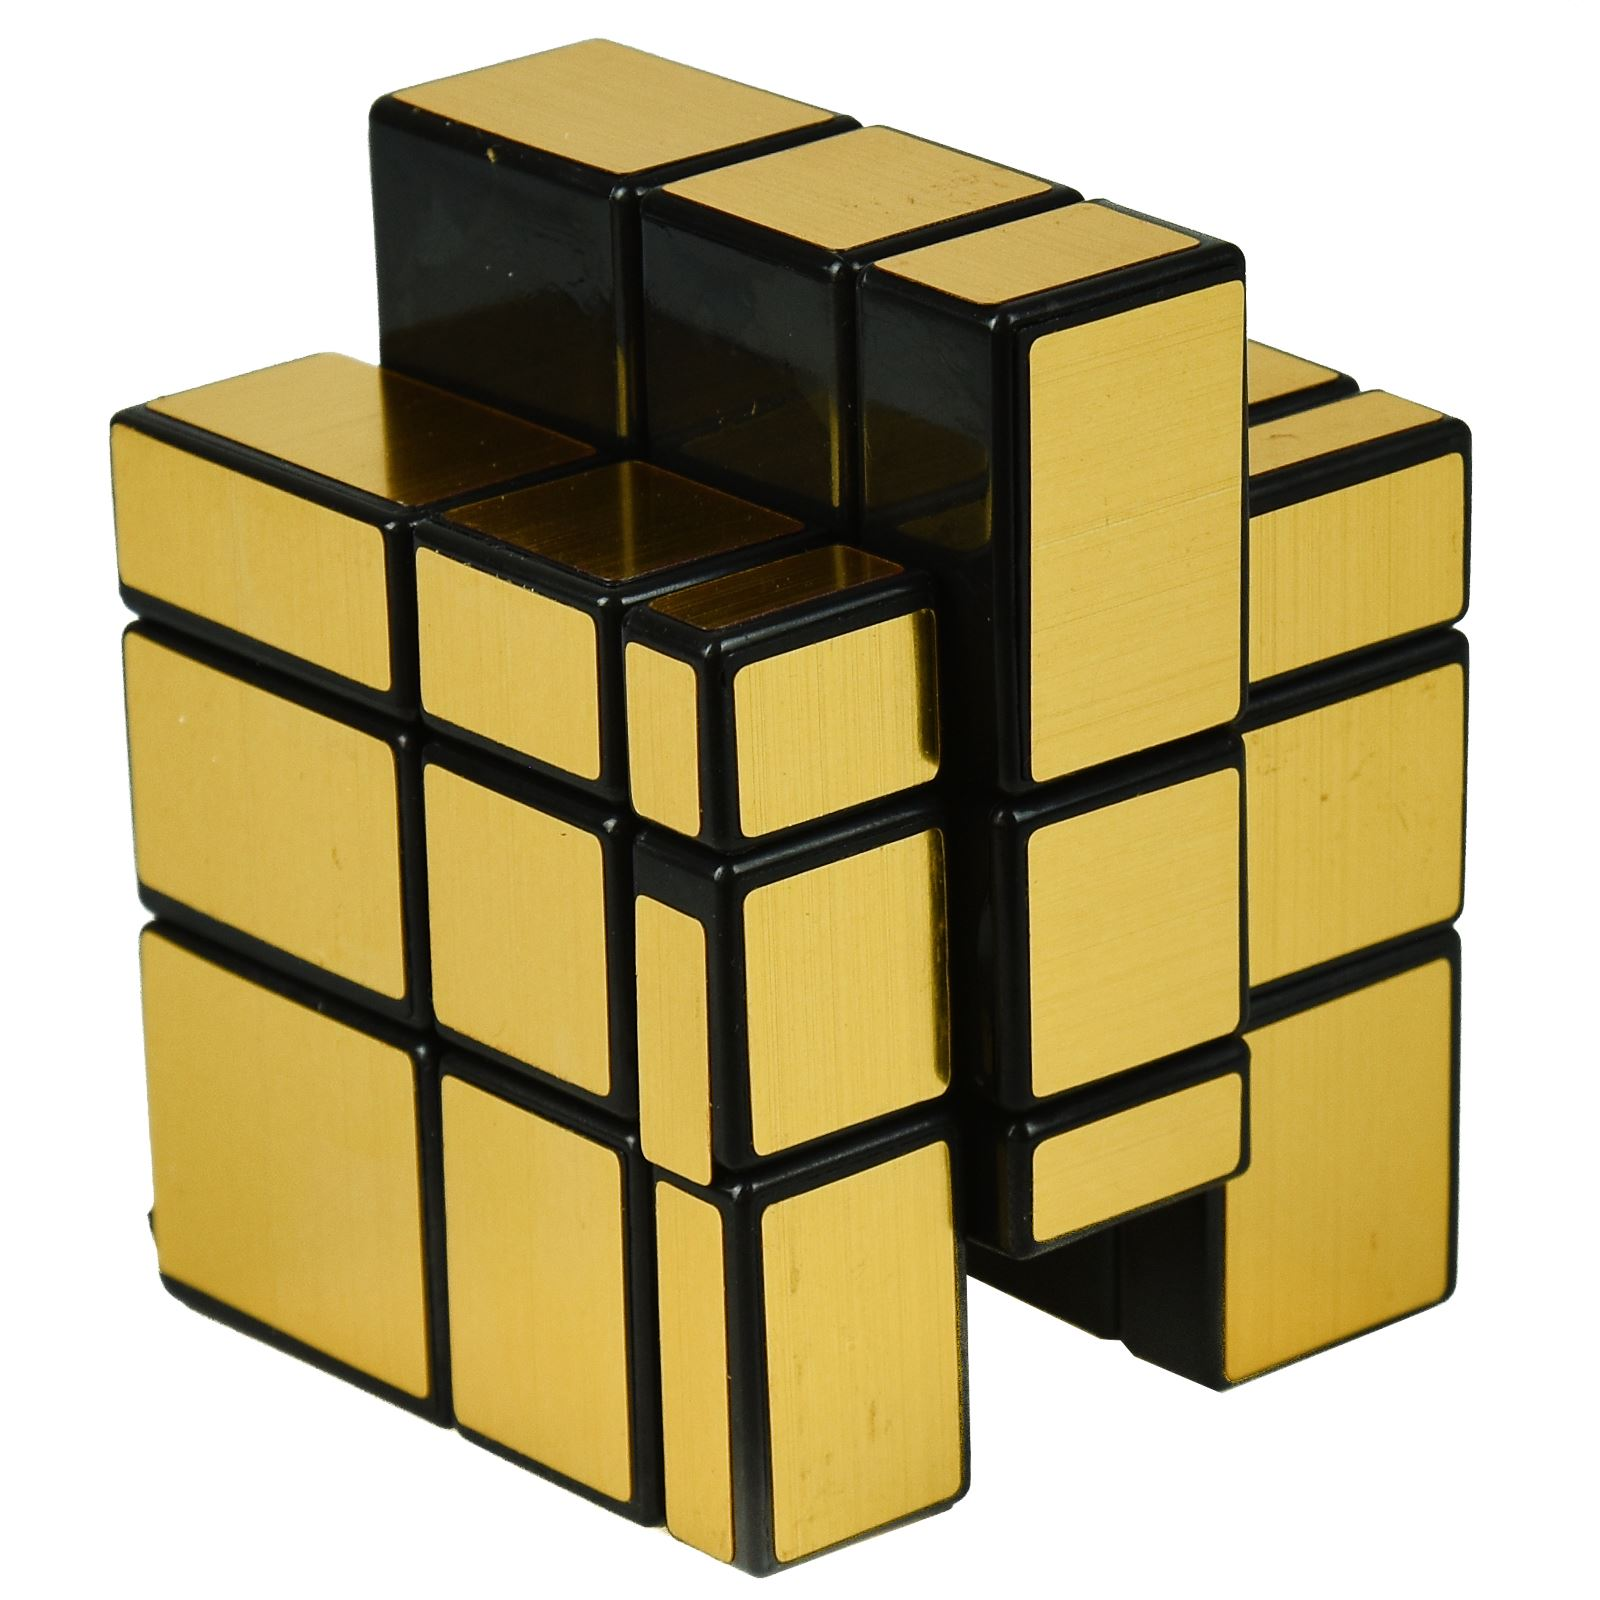 3x3-Miroir-Cube-Puzzle-Mind-Game-Brain-Teasers-Magic-scies-sauteuses-enfants-jouet-adulte-cadeau miniature 4